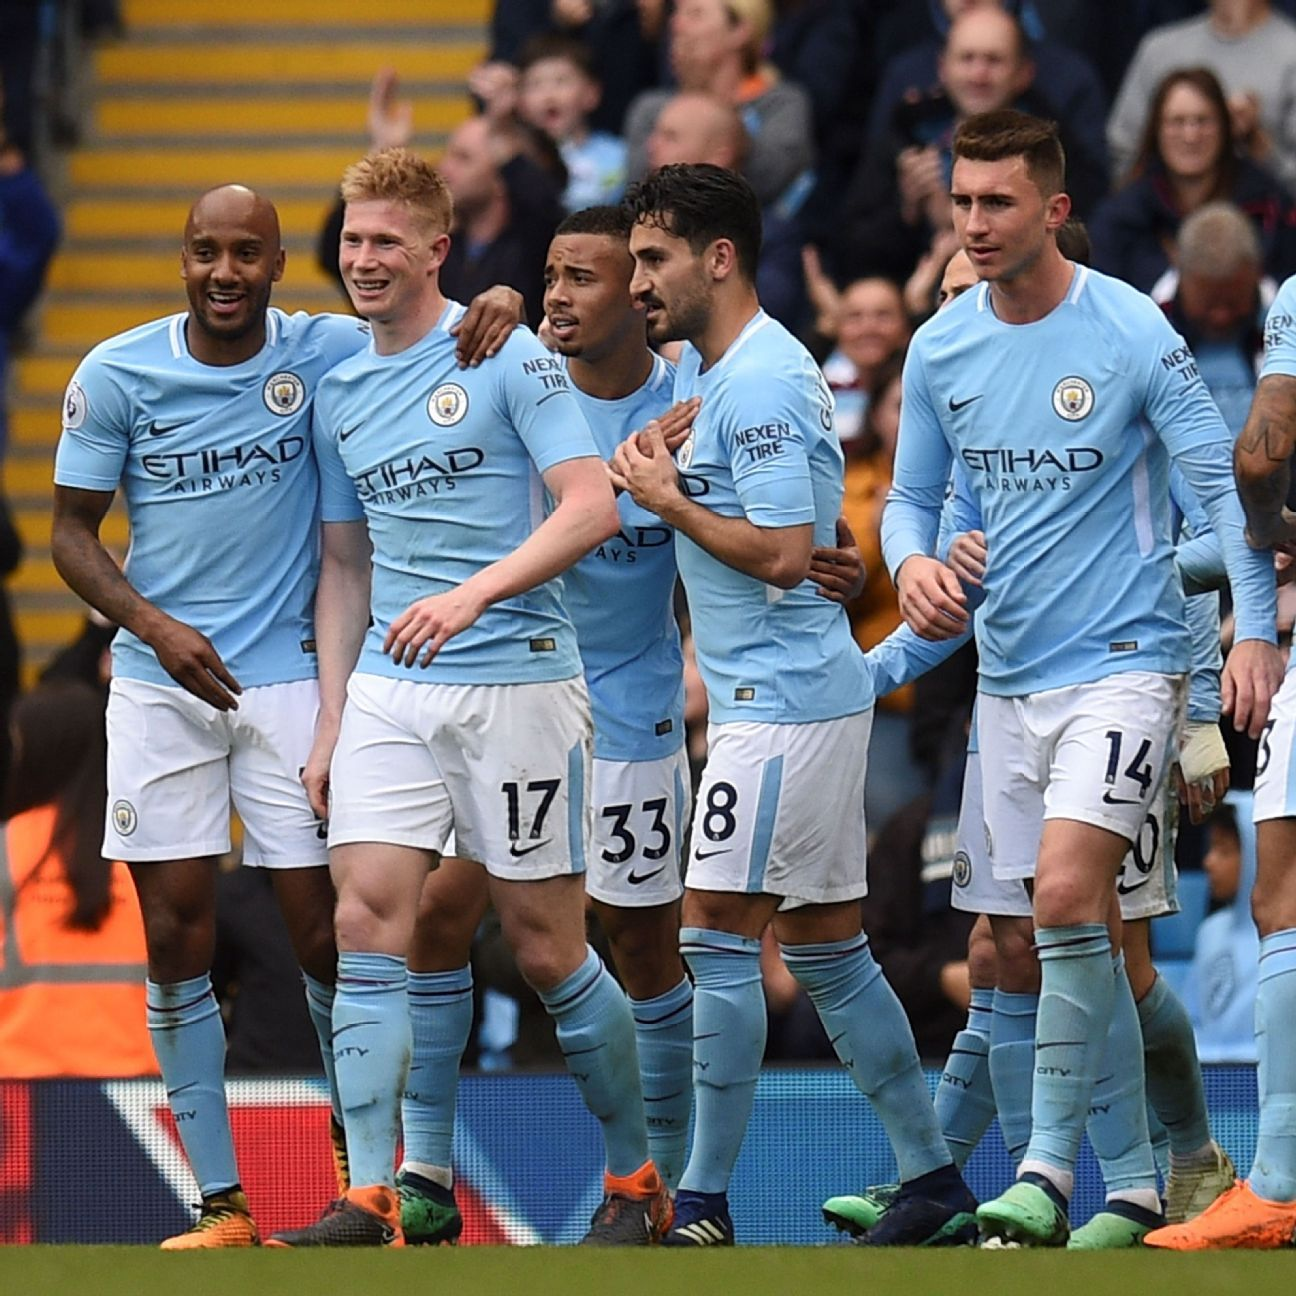 Manchester City players celebrate during their 5-0 Premier League win against Swansea.